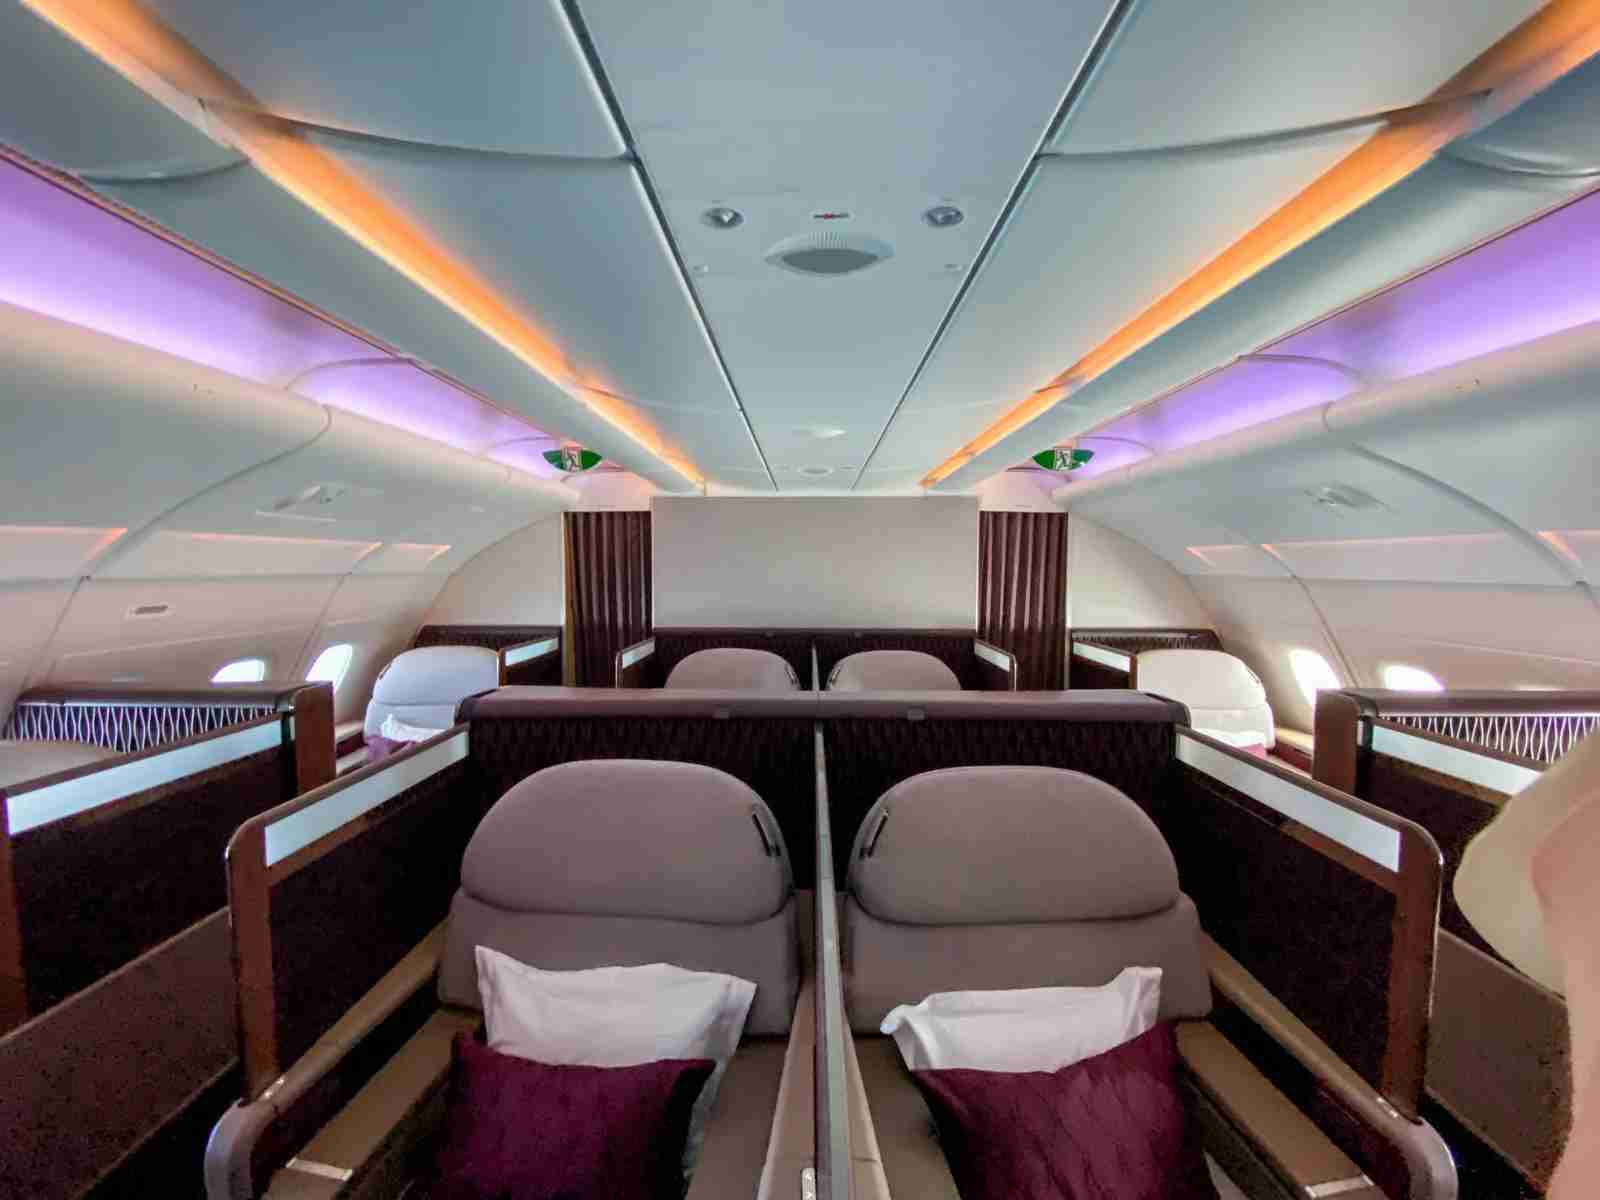 Qatar Airways has used lighting to set various moods in their first class cabins. (Photo by Liam Spencer/The Points Guy)